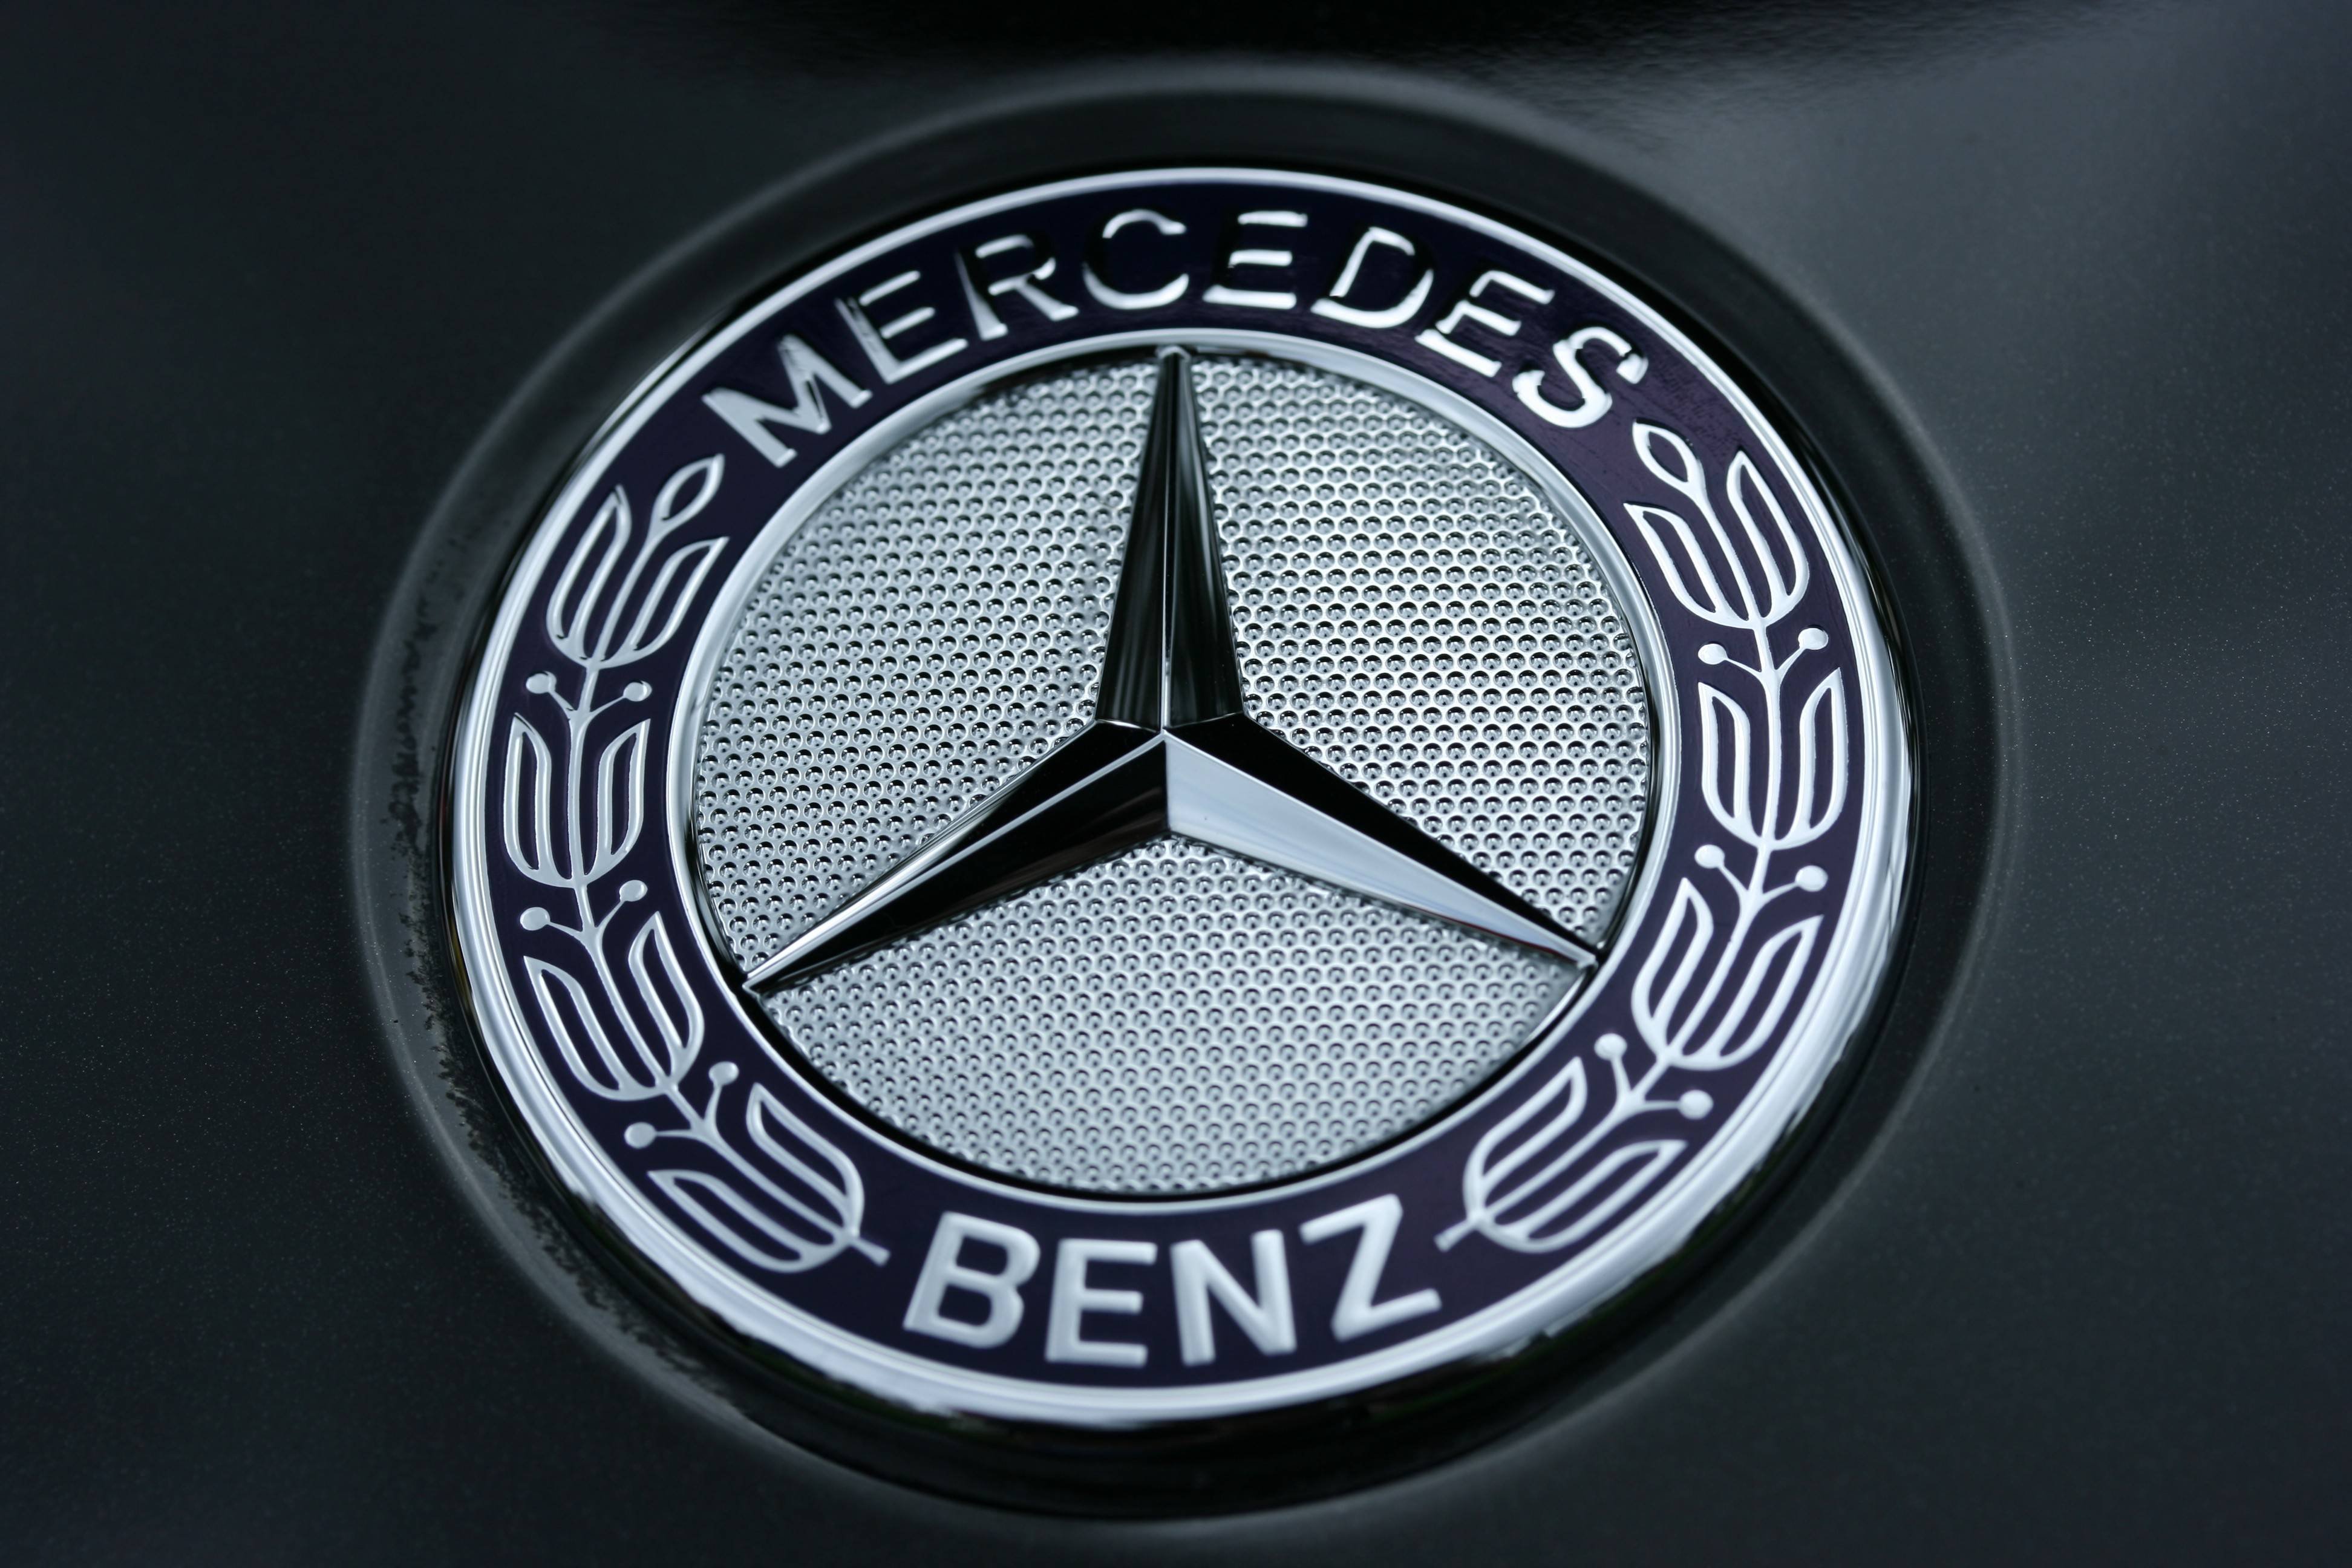 Free wallpapers logos wallpaper cave for Mercedes benz logo 3d